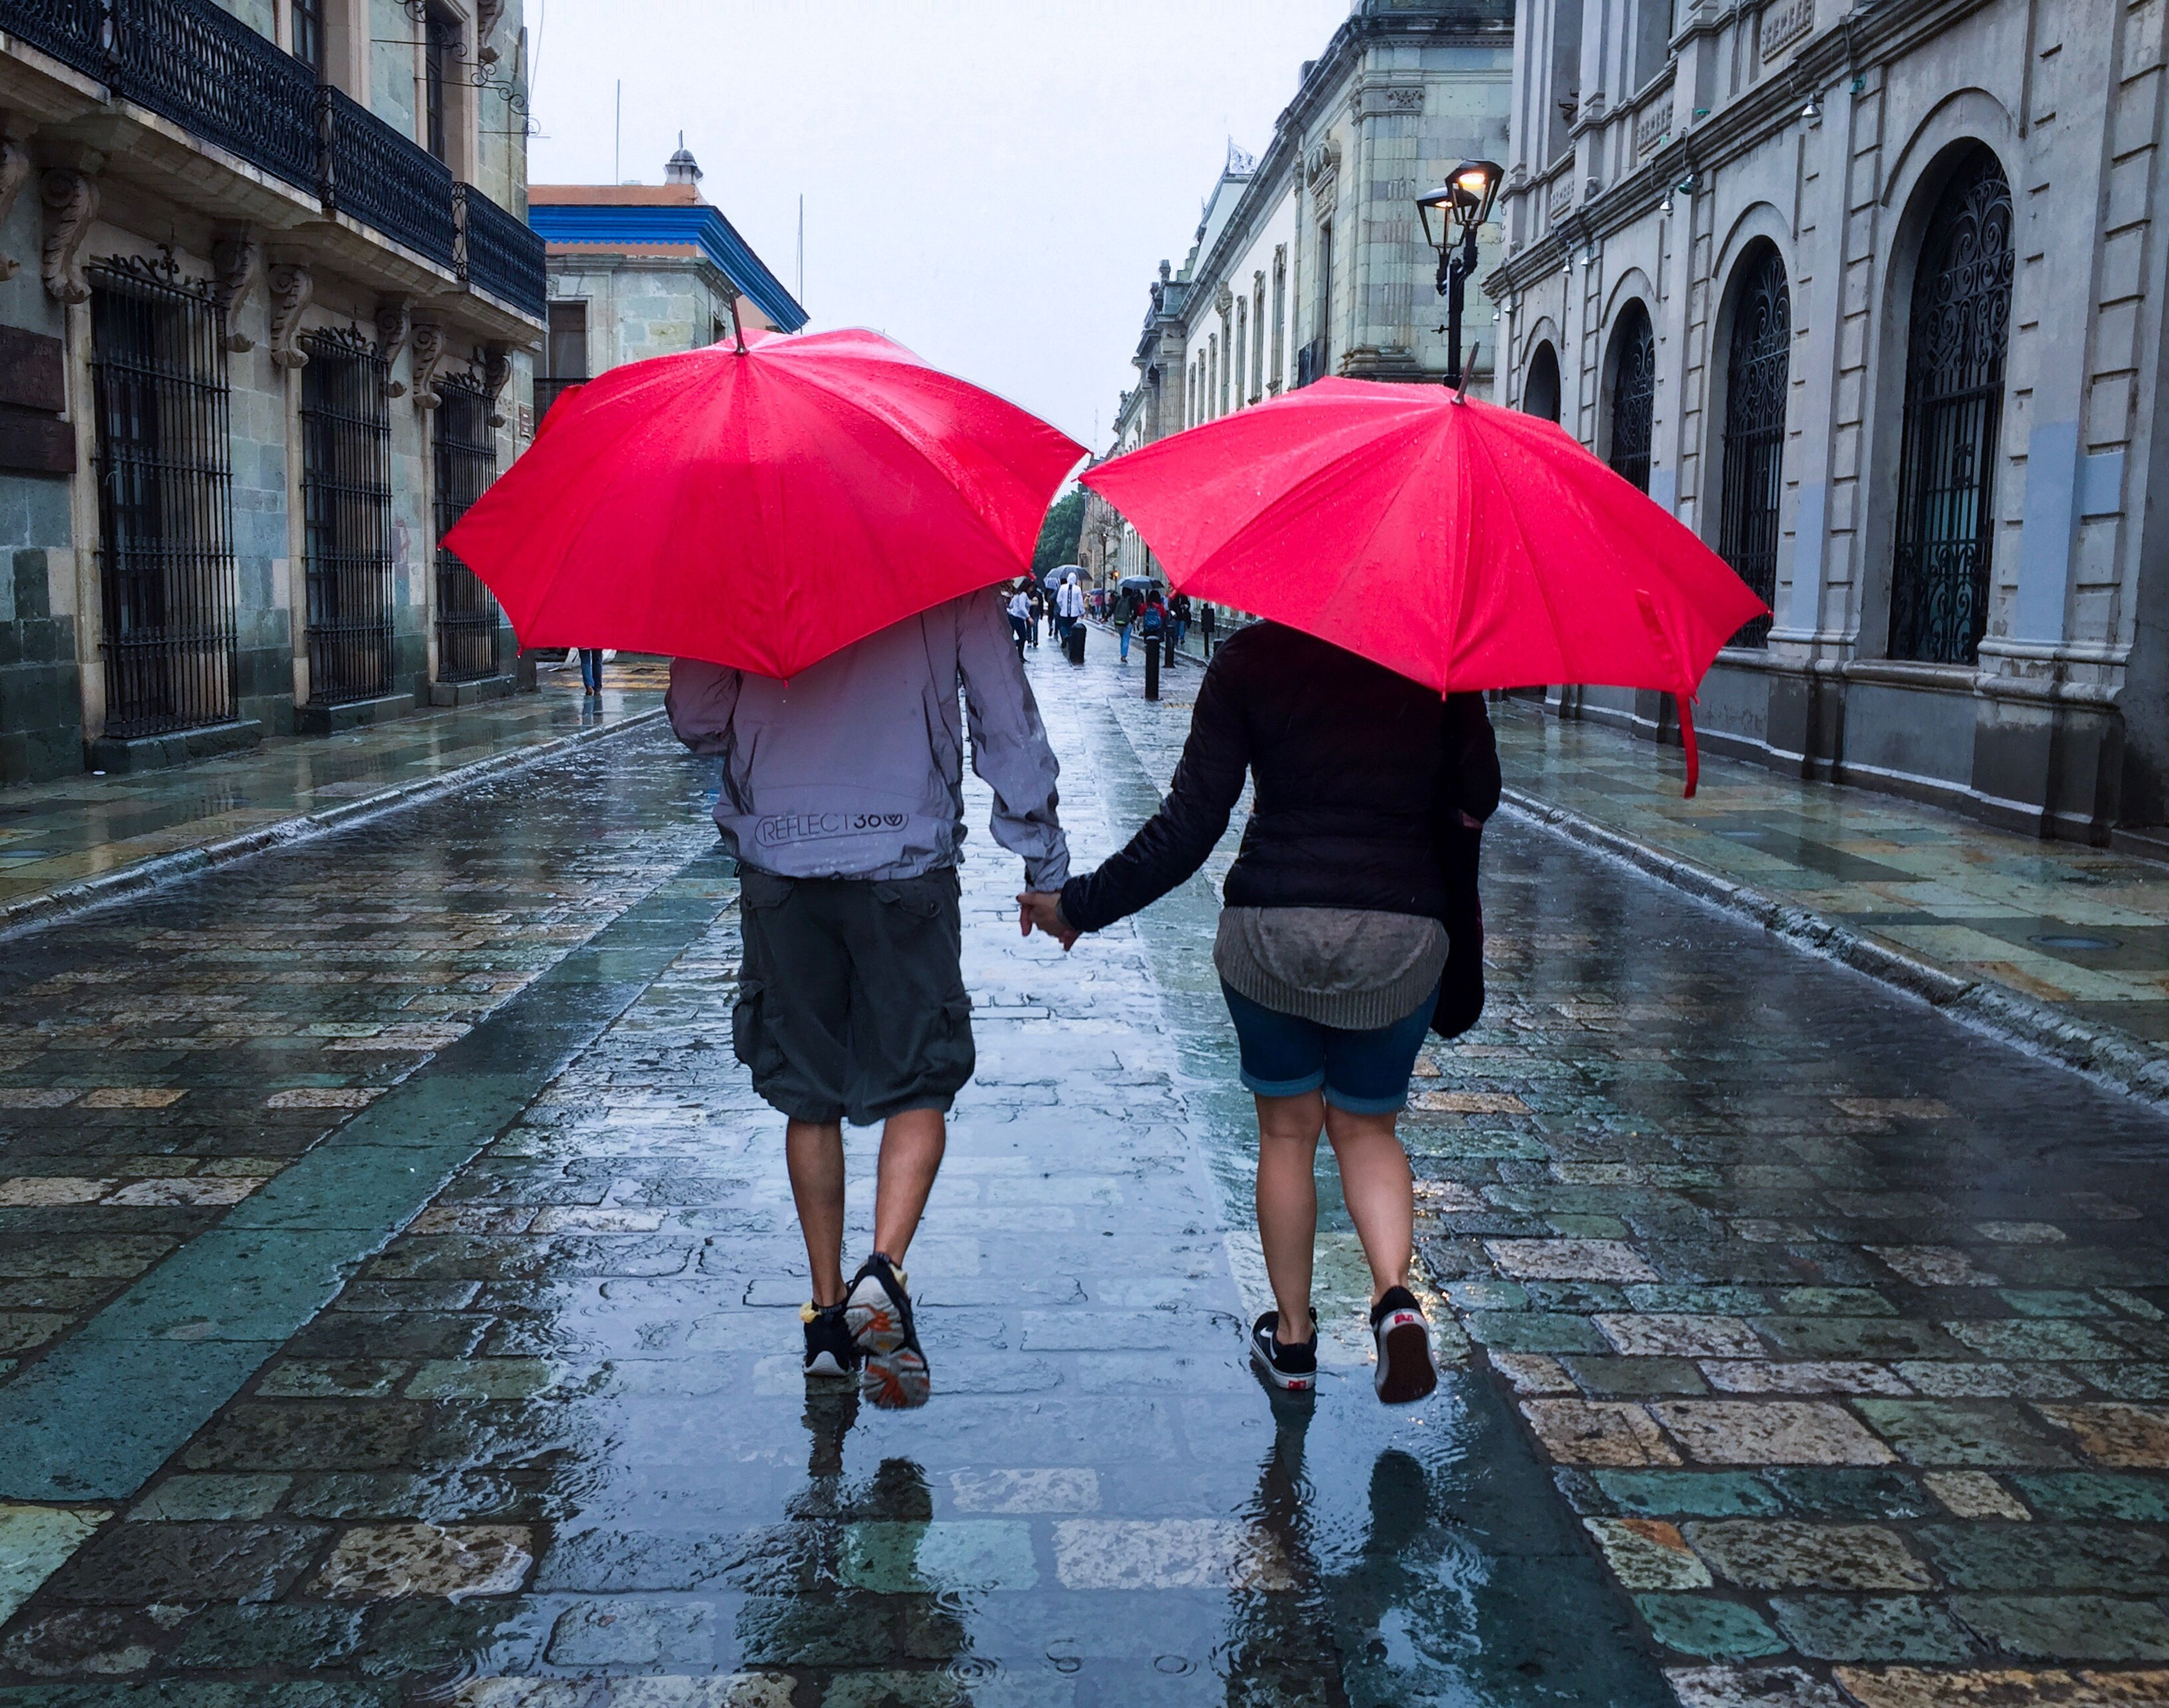 rain, wet, rainy season, weather, protection, togetherness, two people, friendship, real people, rear view, walking, raindrop, full length, water, love, bonding, outdoors, lifestyles, day, architecture, under, city, adult, people